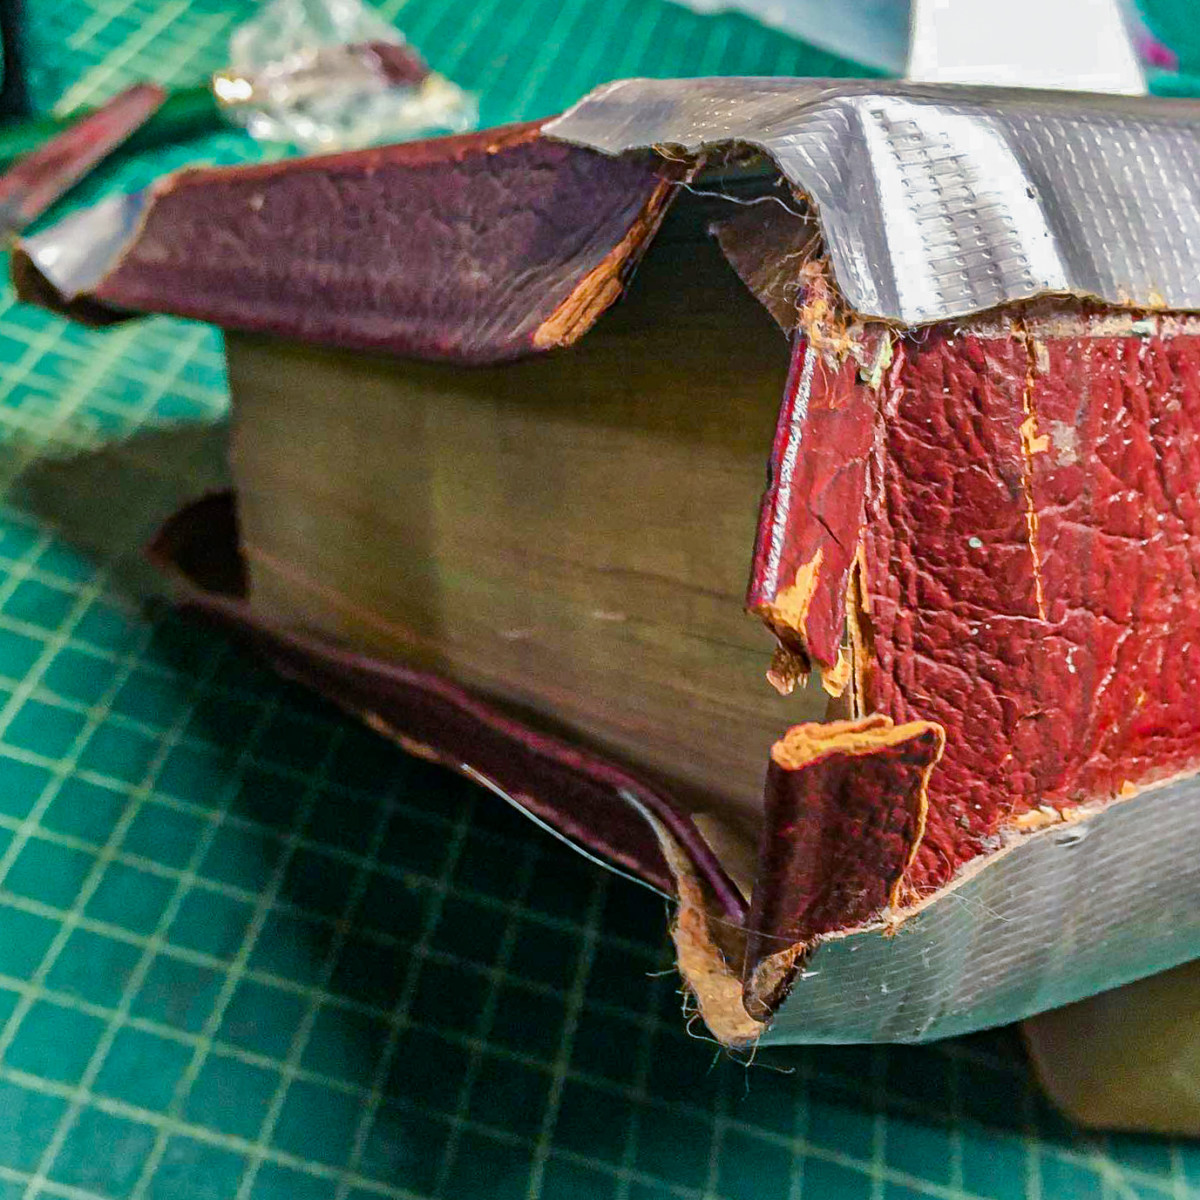 How Not To Repair Your Bible With Duct Tape 2